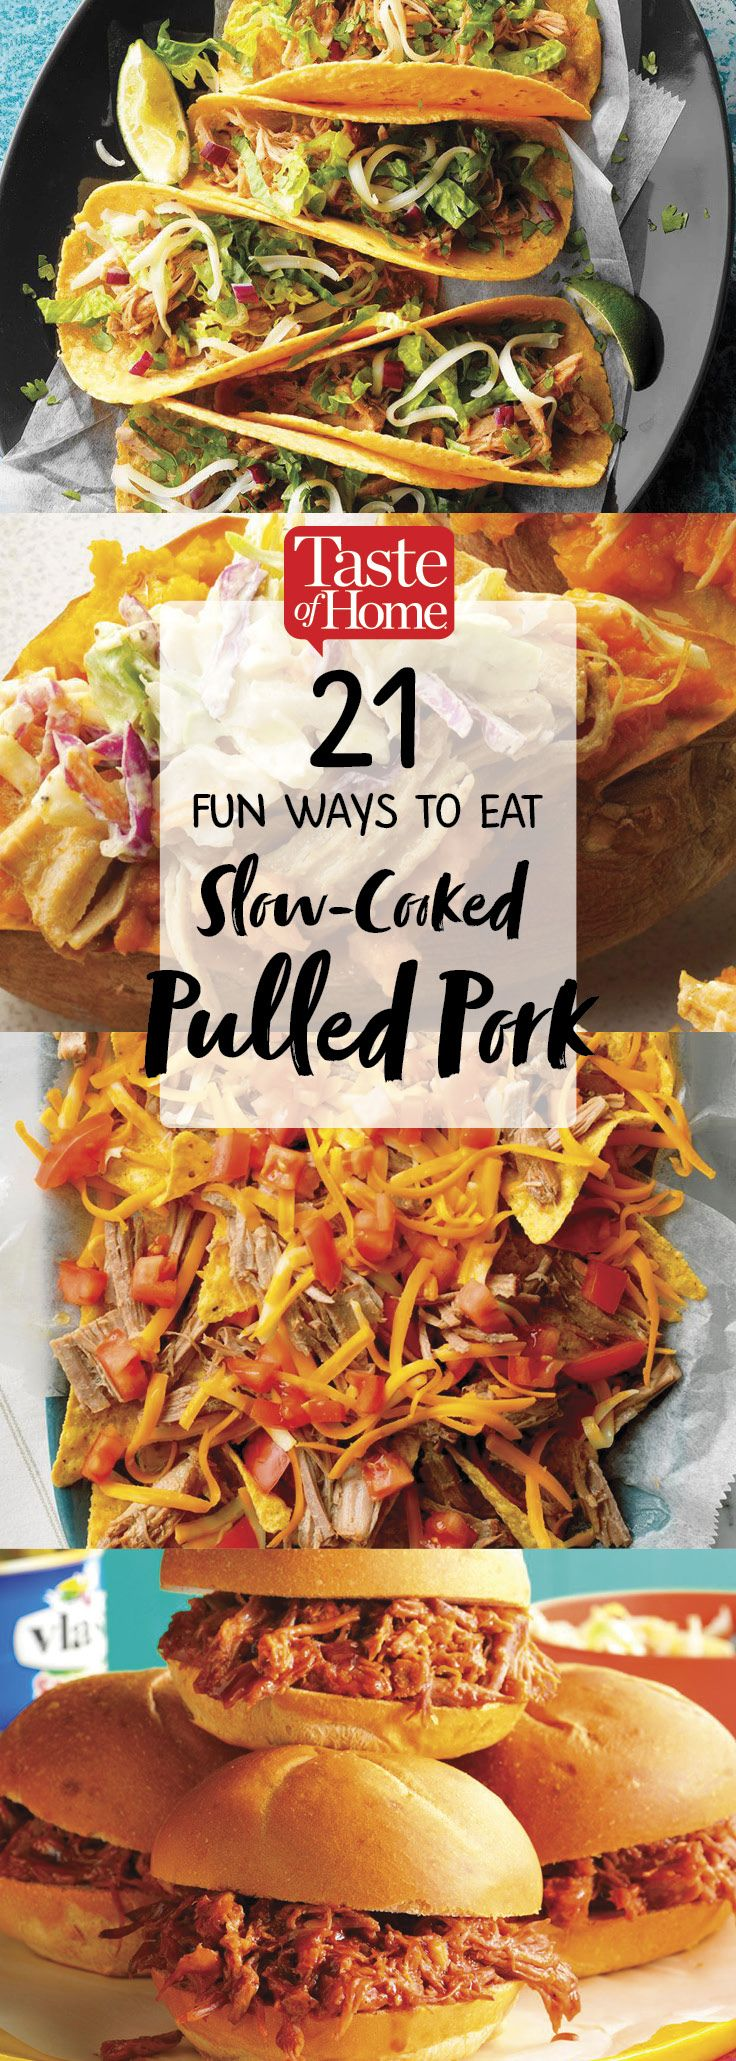 21 Fun Ways to Eat Slow-Cooked Pulled Pork